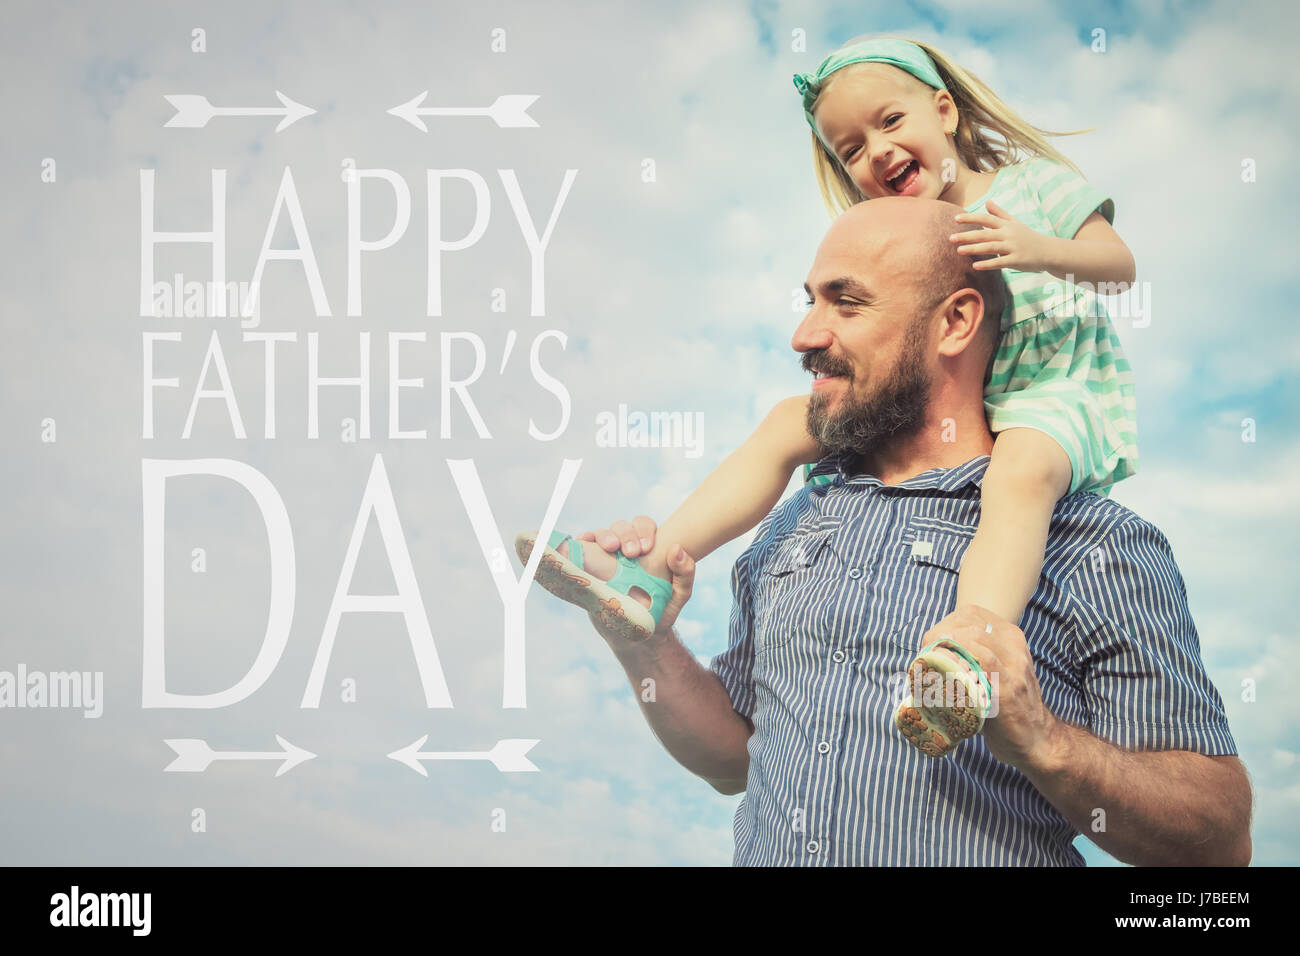 Adorable daughter and father portrait, happy family, father's day background - Stock Image